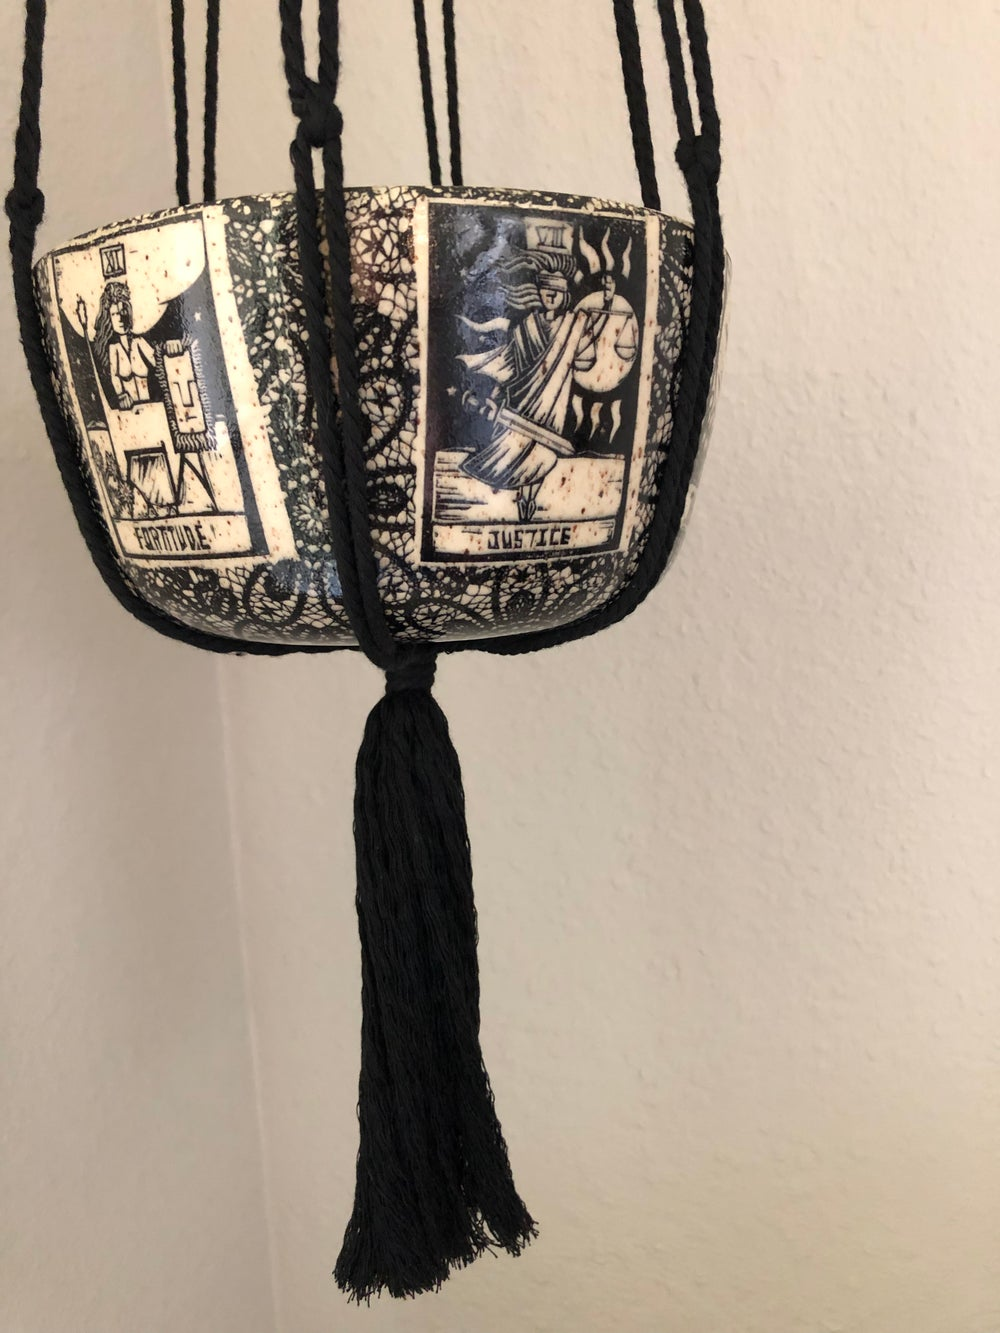 Tarot and Lace Hanging Planter